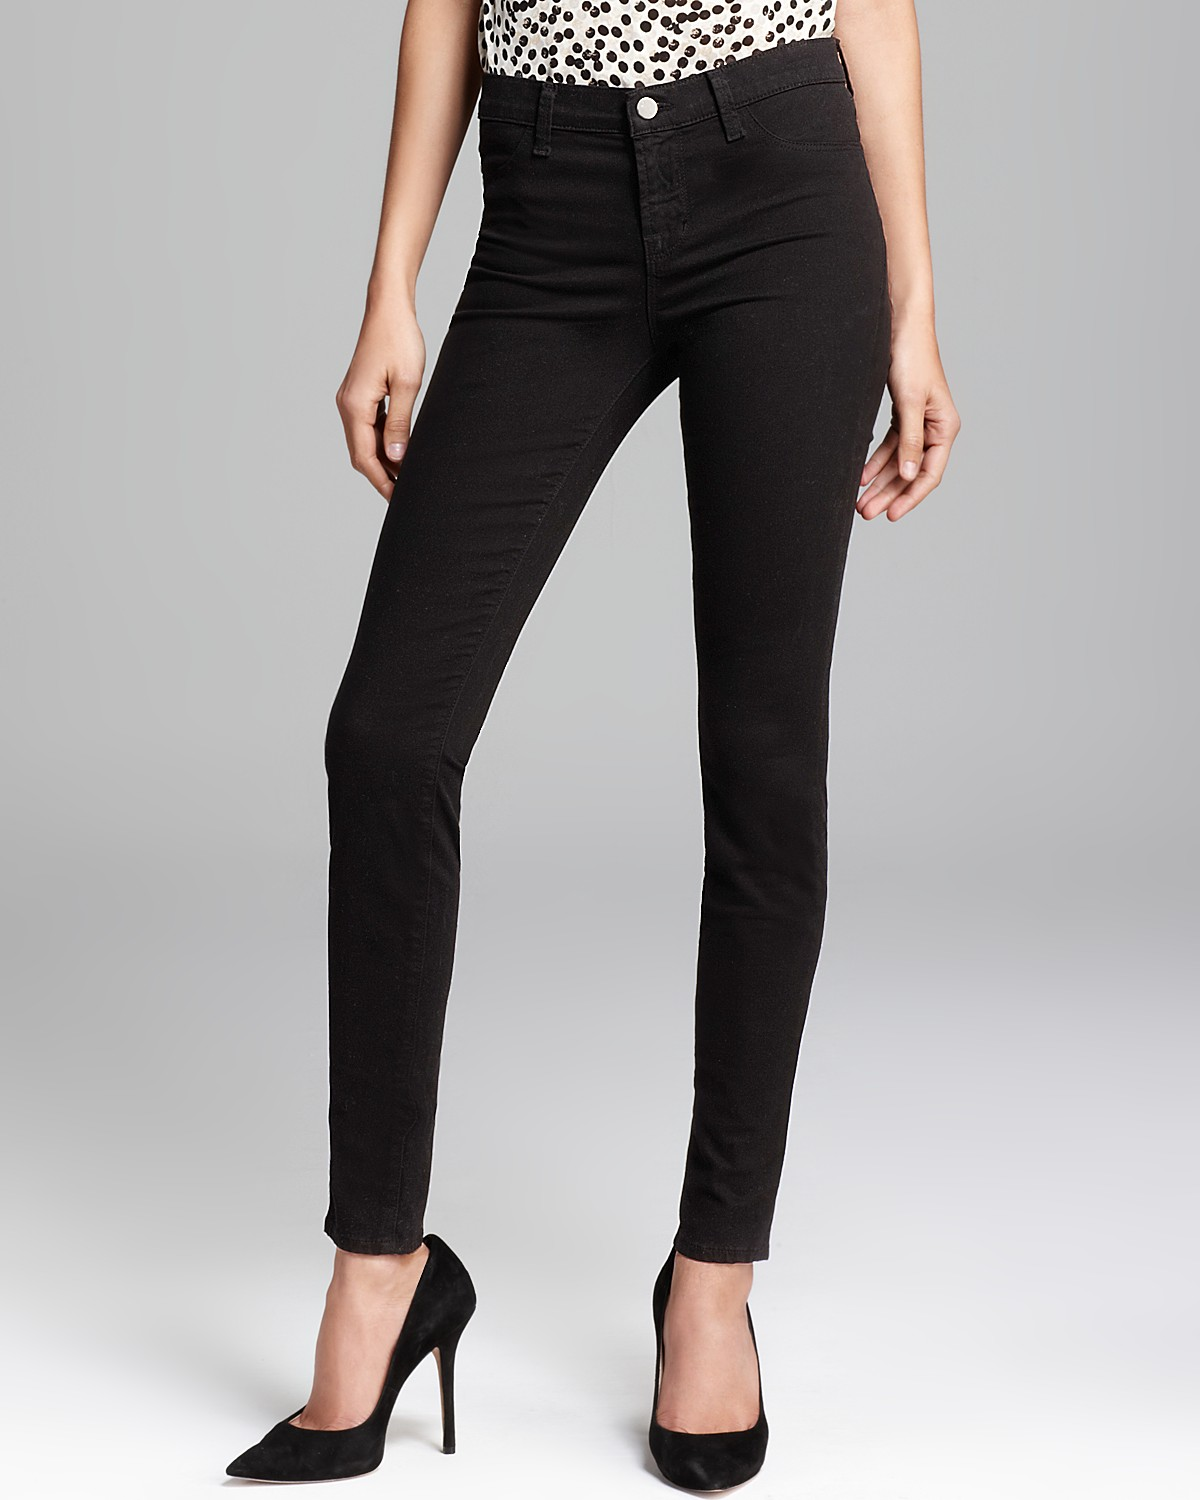 Brand Jeans - Luxe Sateen 485 Super Skinny in Black | Bloomingdale's